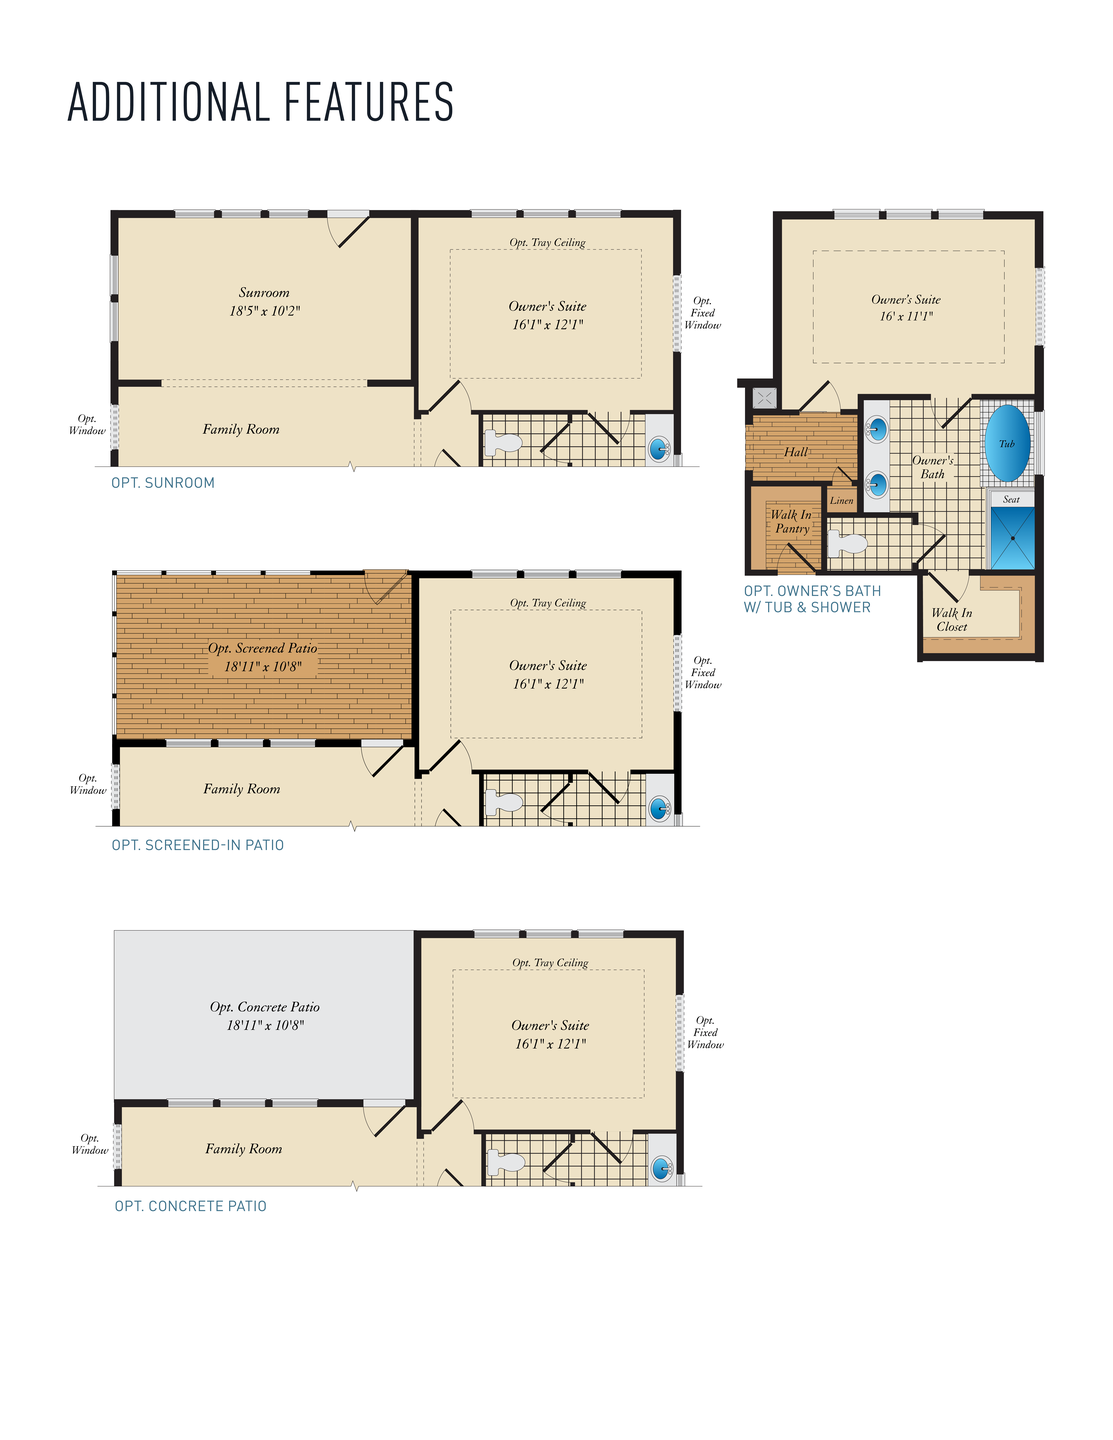 Additional Features. Ives Home with 2 Bedrooms